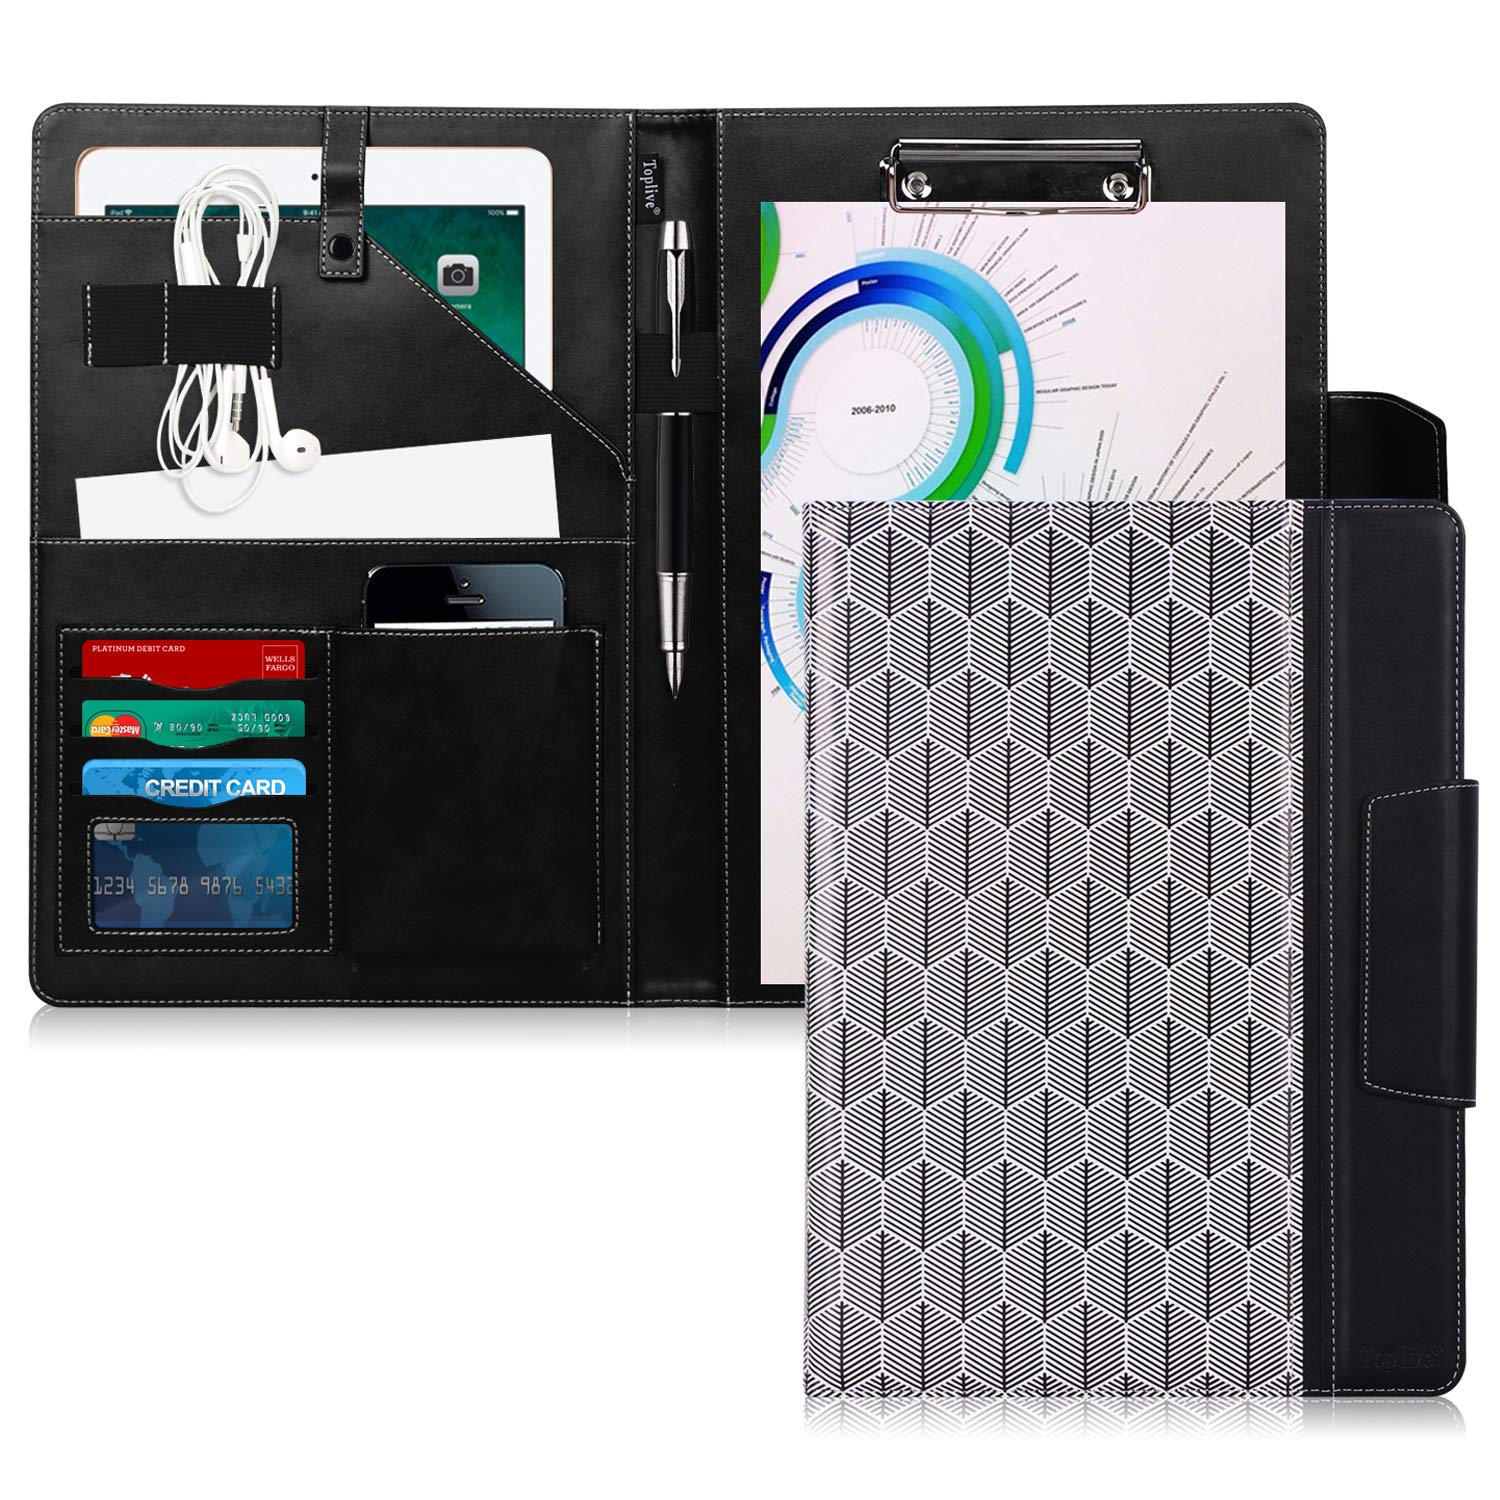 Toplive Portfolio Case Padfolio, Executive Business Document Organizer with Letter Size Clipboard, Business Card Holder, Tablet Sleeve, Perfect for Business School Office Conference, Tree-Black